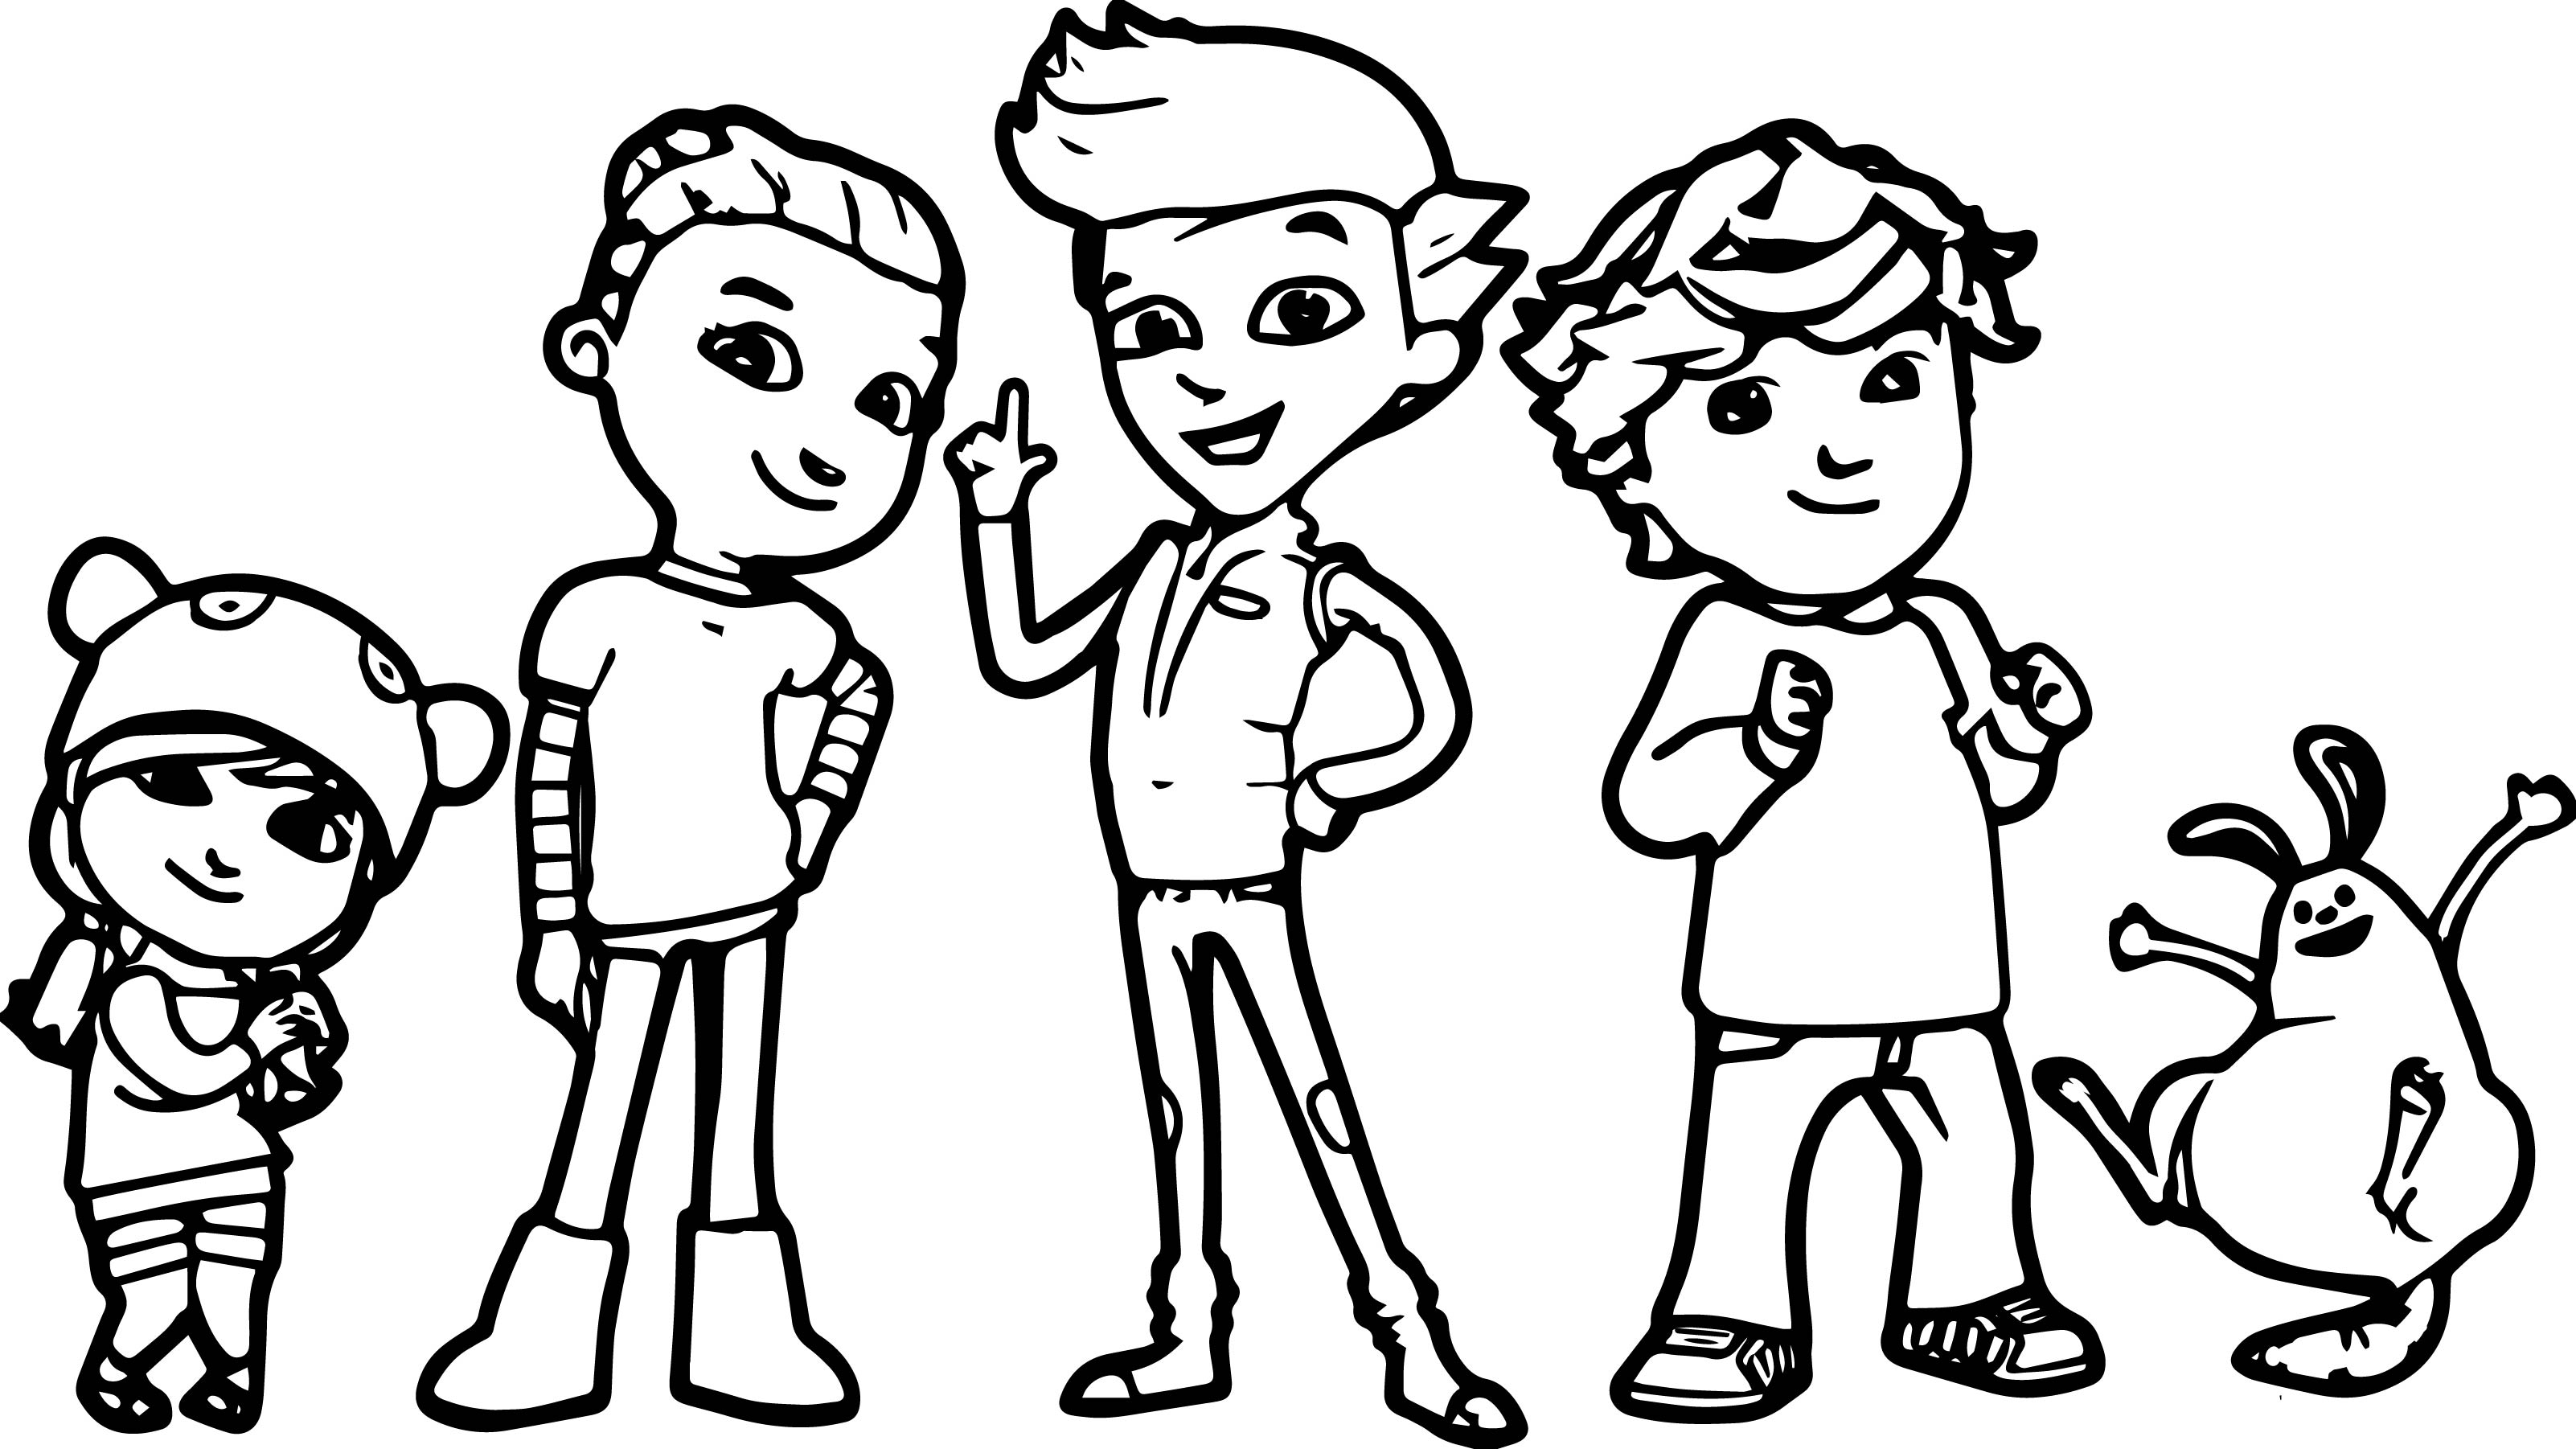 Pbs kids ready jet go coloring page for Pbskids coloring pages